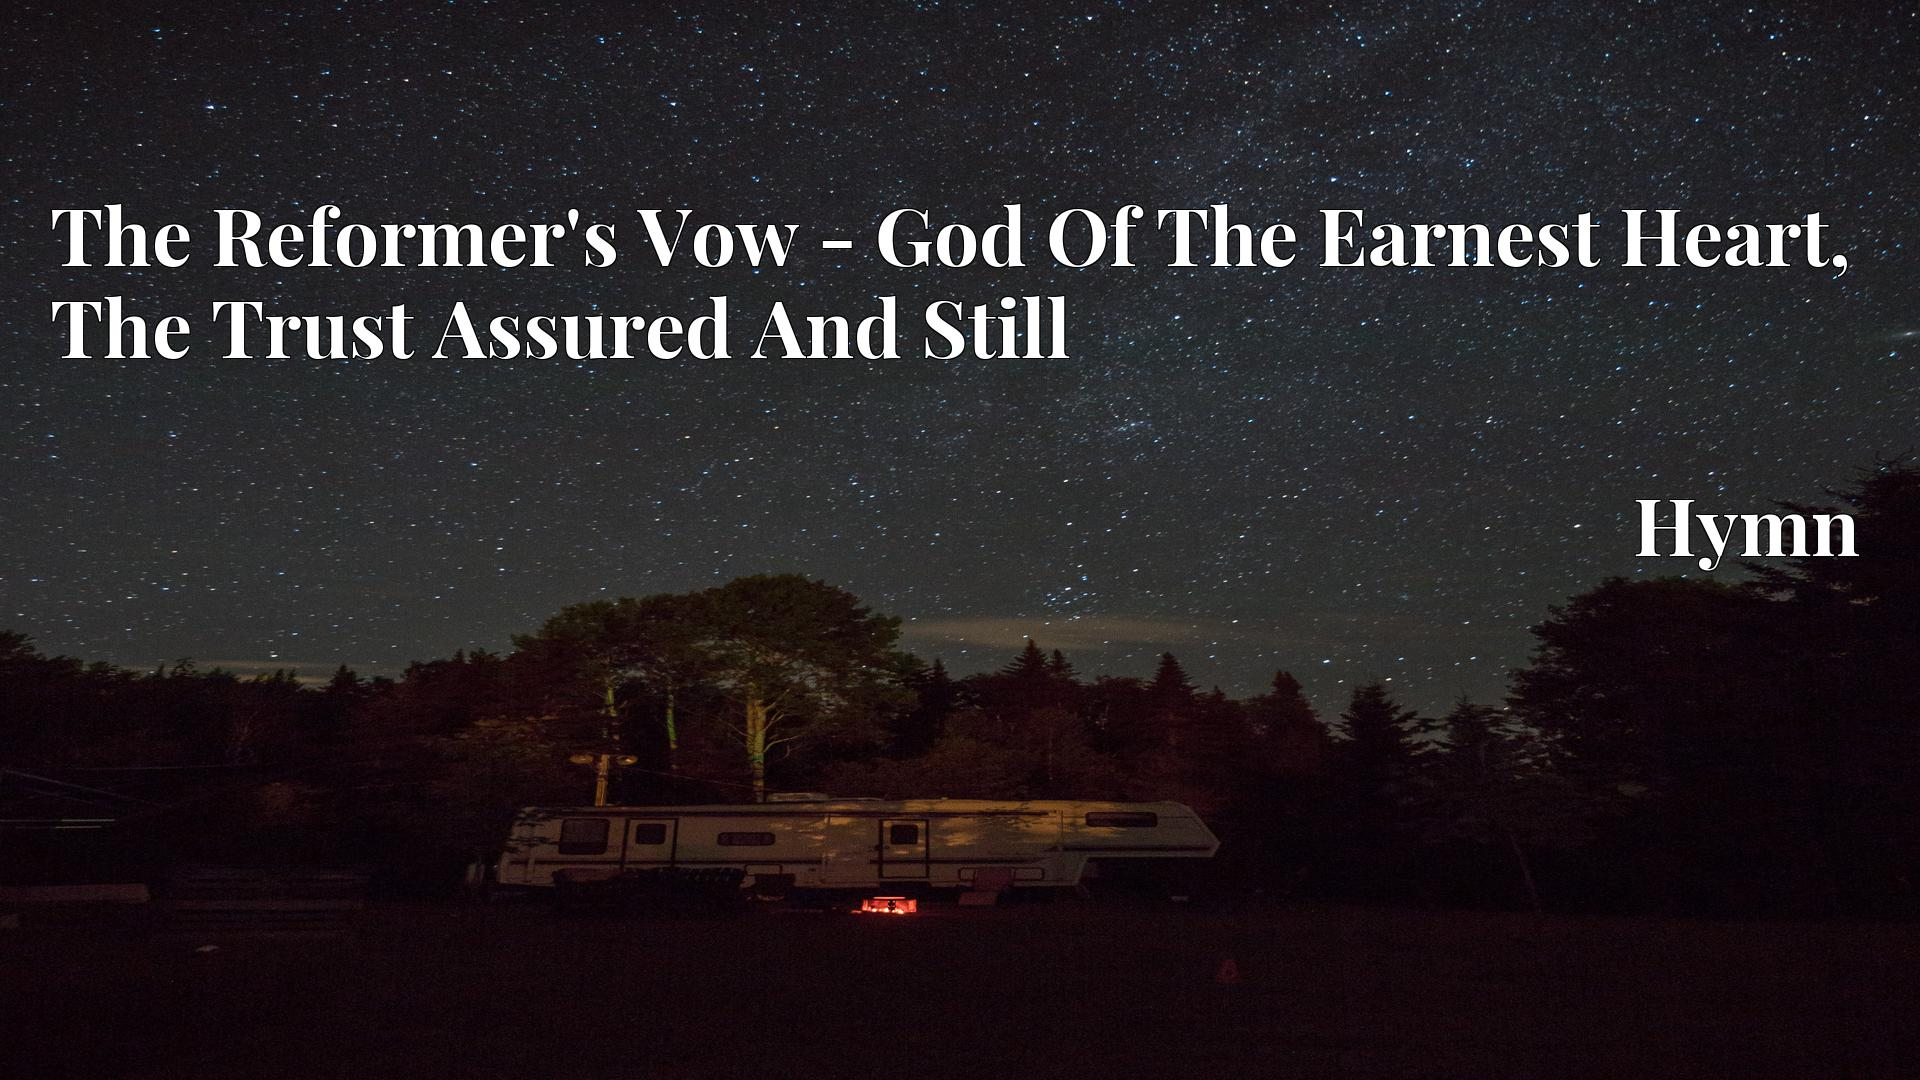 The Reformer's Vow - God Of The Earnest Heart, The Trust Assured And Still - Hymn